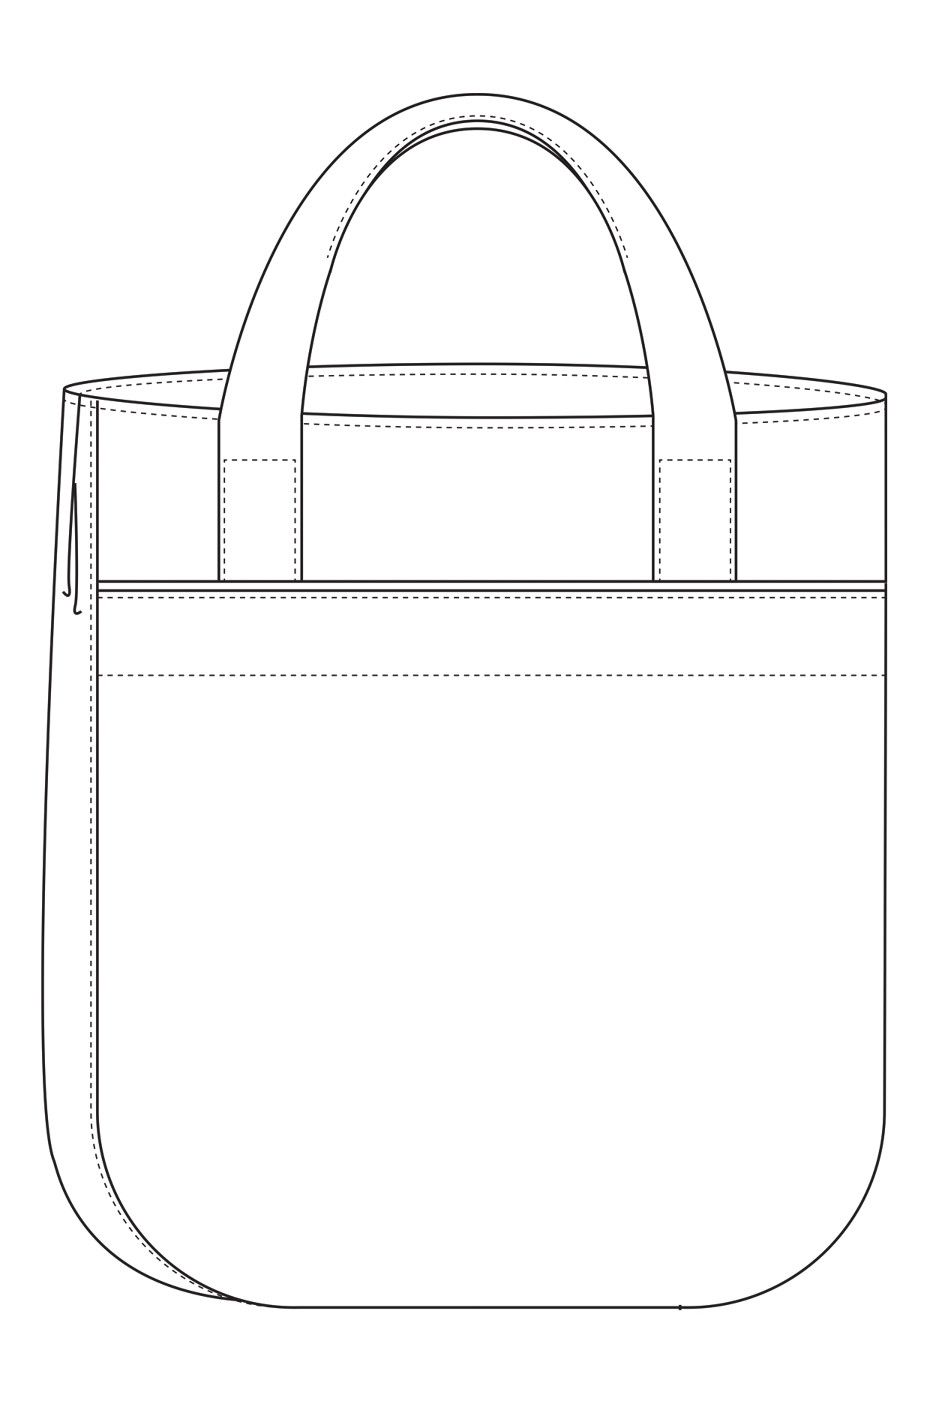 The Super Tote sewing pattern by Noodlehead is a roomy